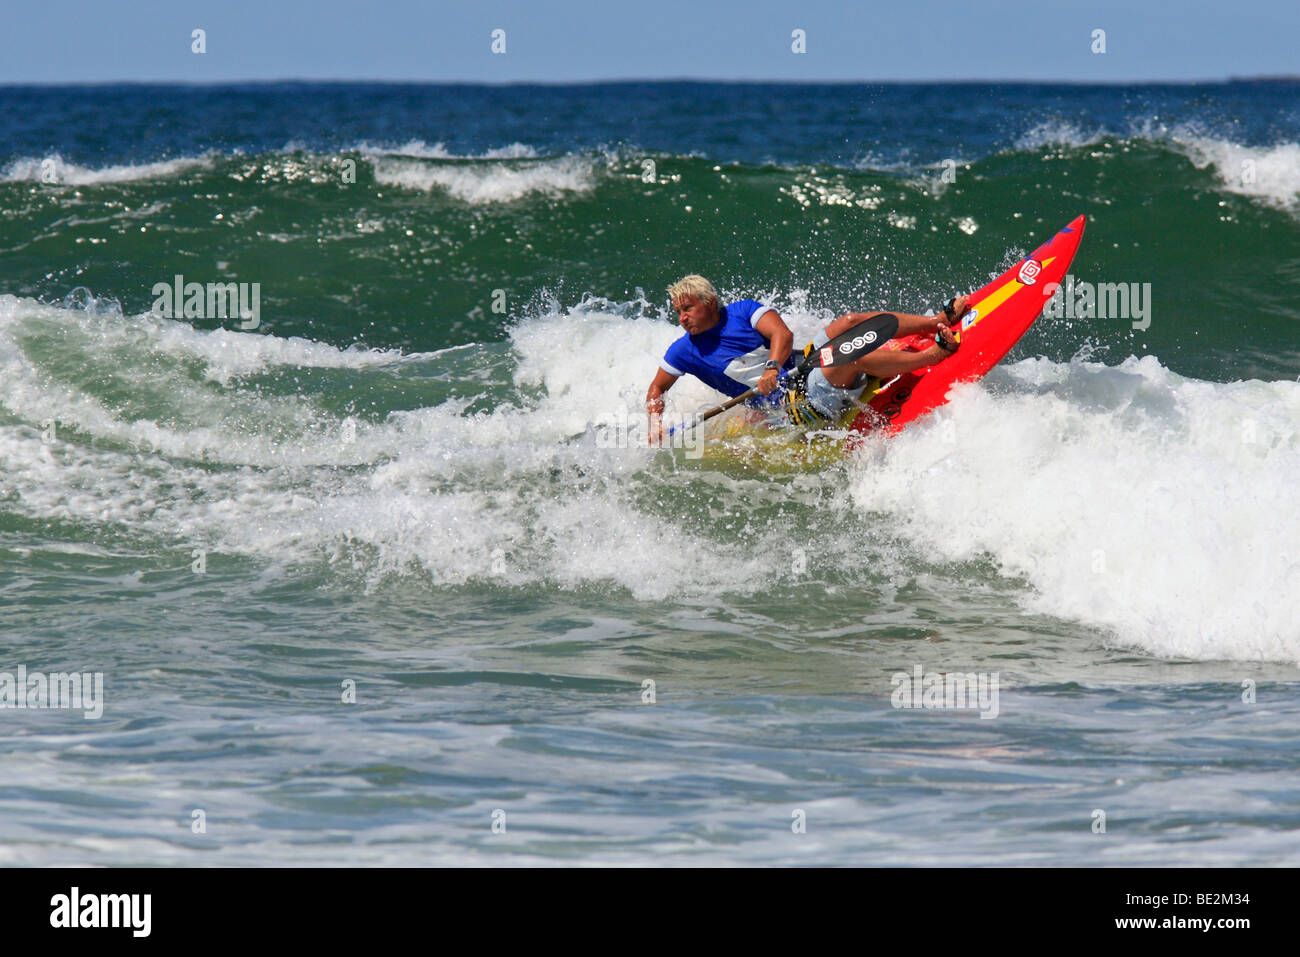 Lisa Ryan, of Australia, competing in the semi finals of the Women's section of the Waveski Surfing World Titles Stock Photo